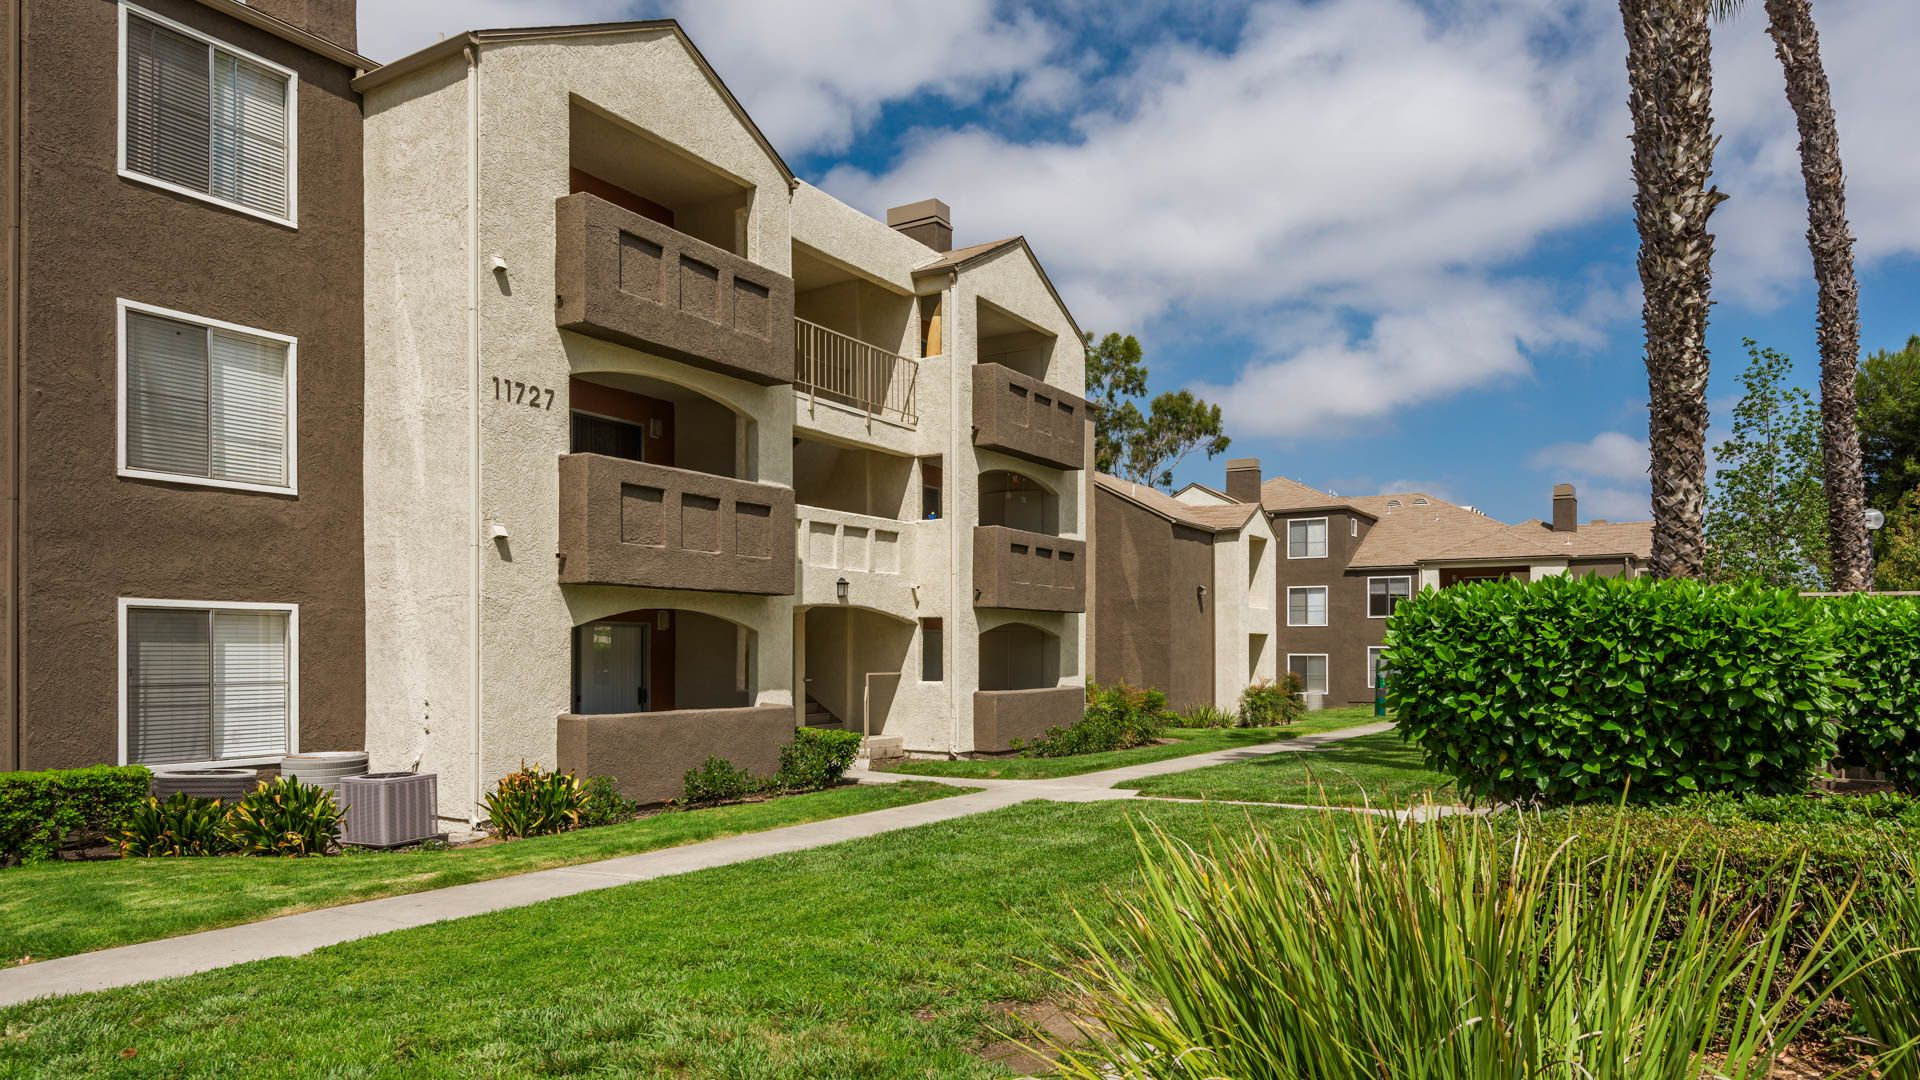 Carmel terrace apartments rancho bernardo 11540 for Terrace building